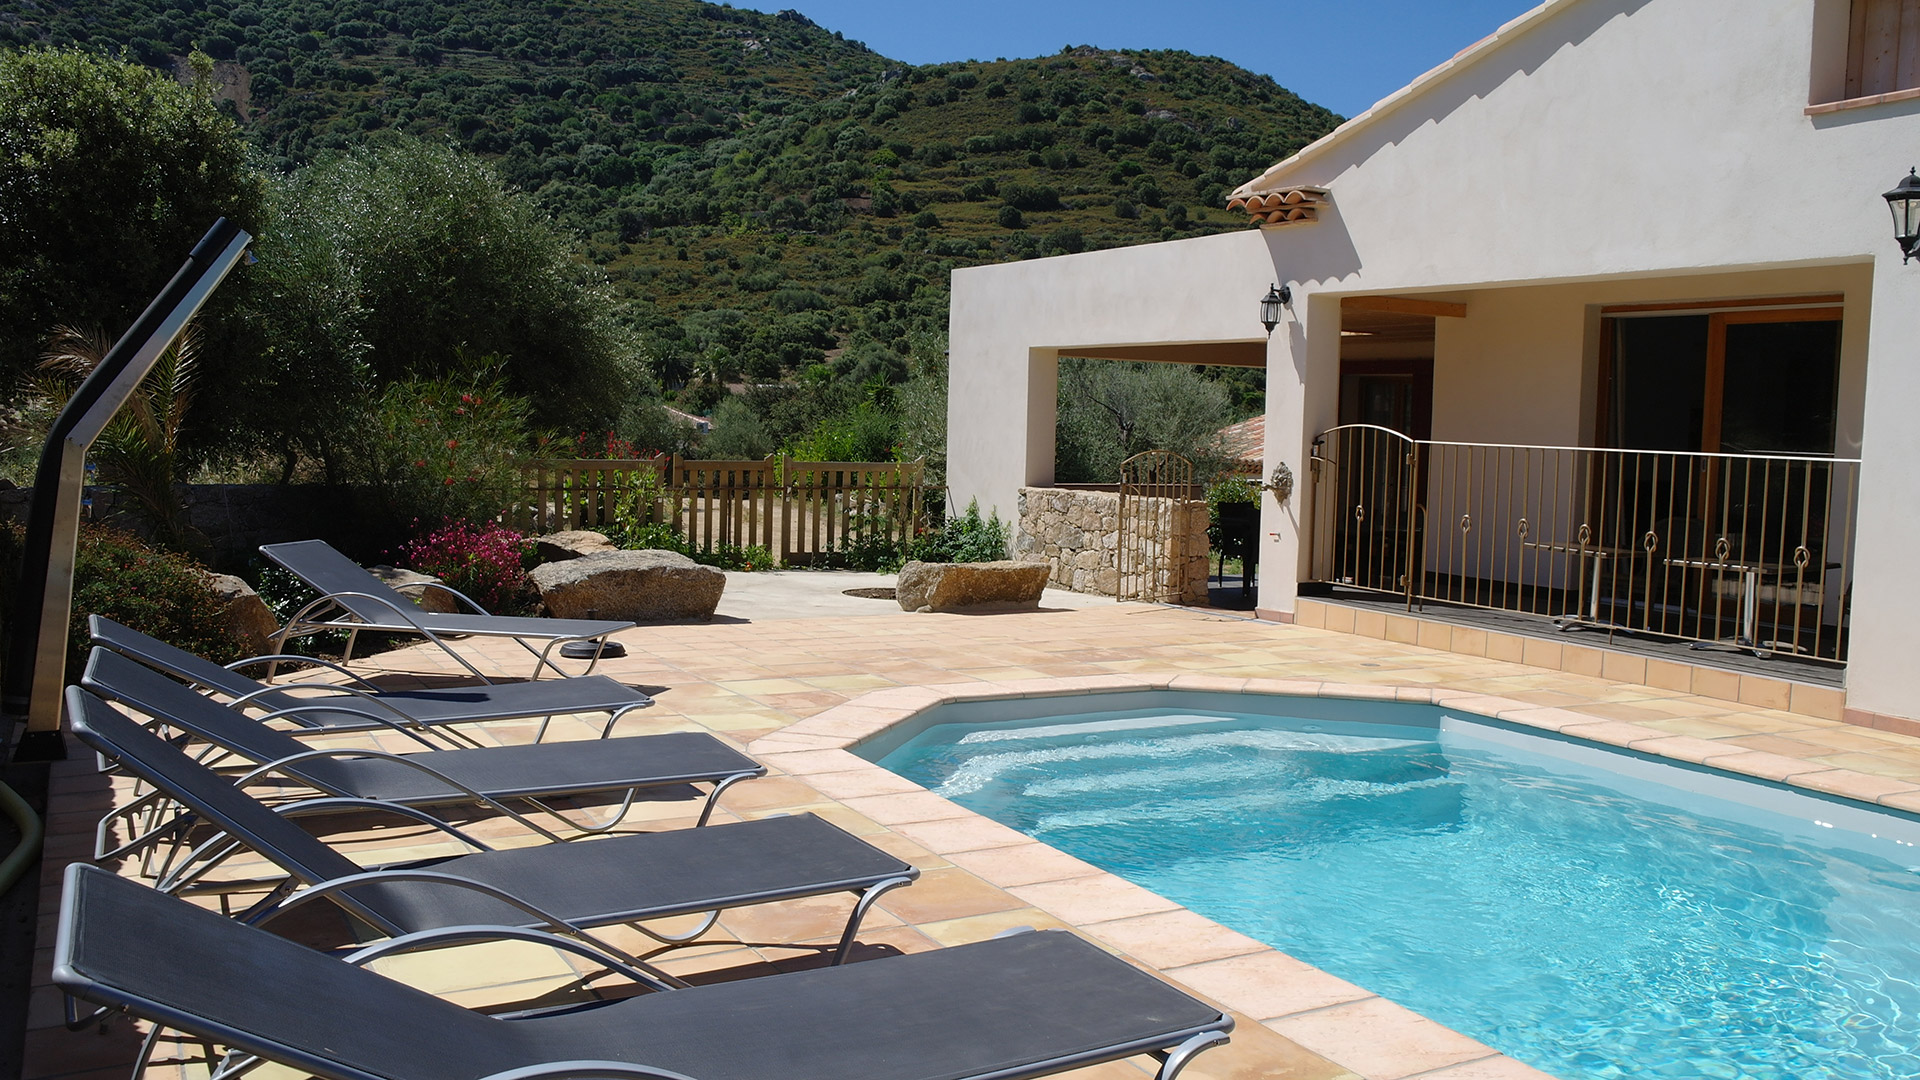 Vacation villa rental in Ile Rousse